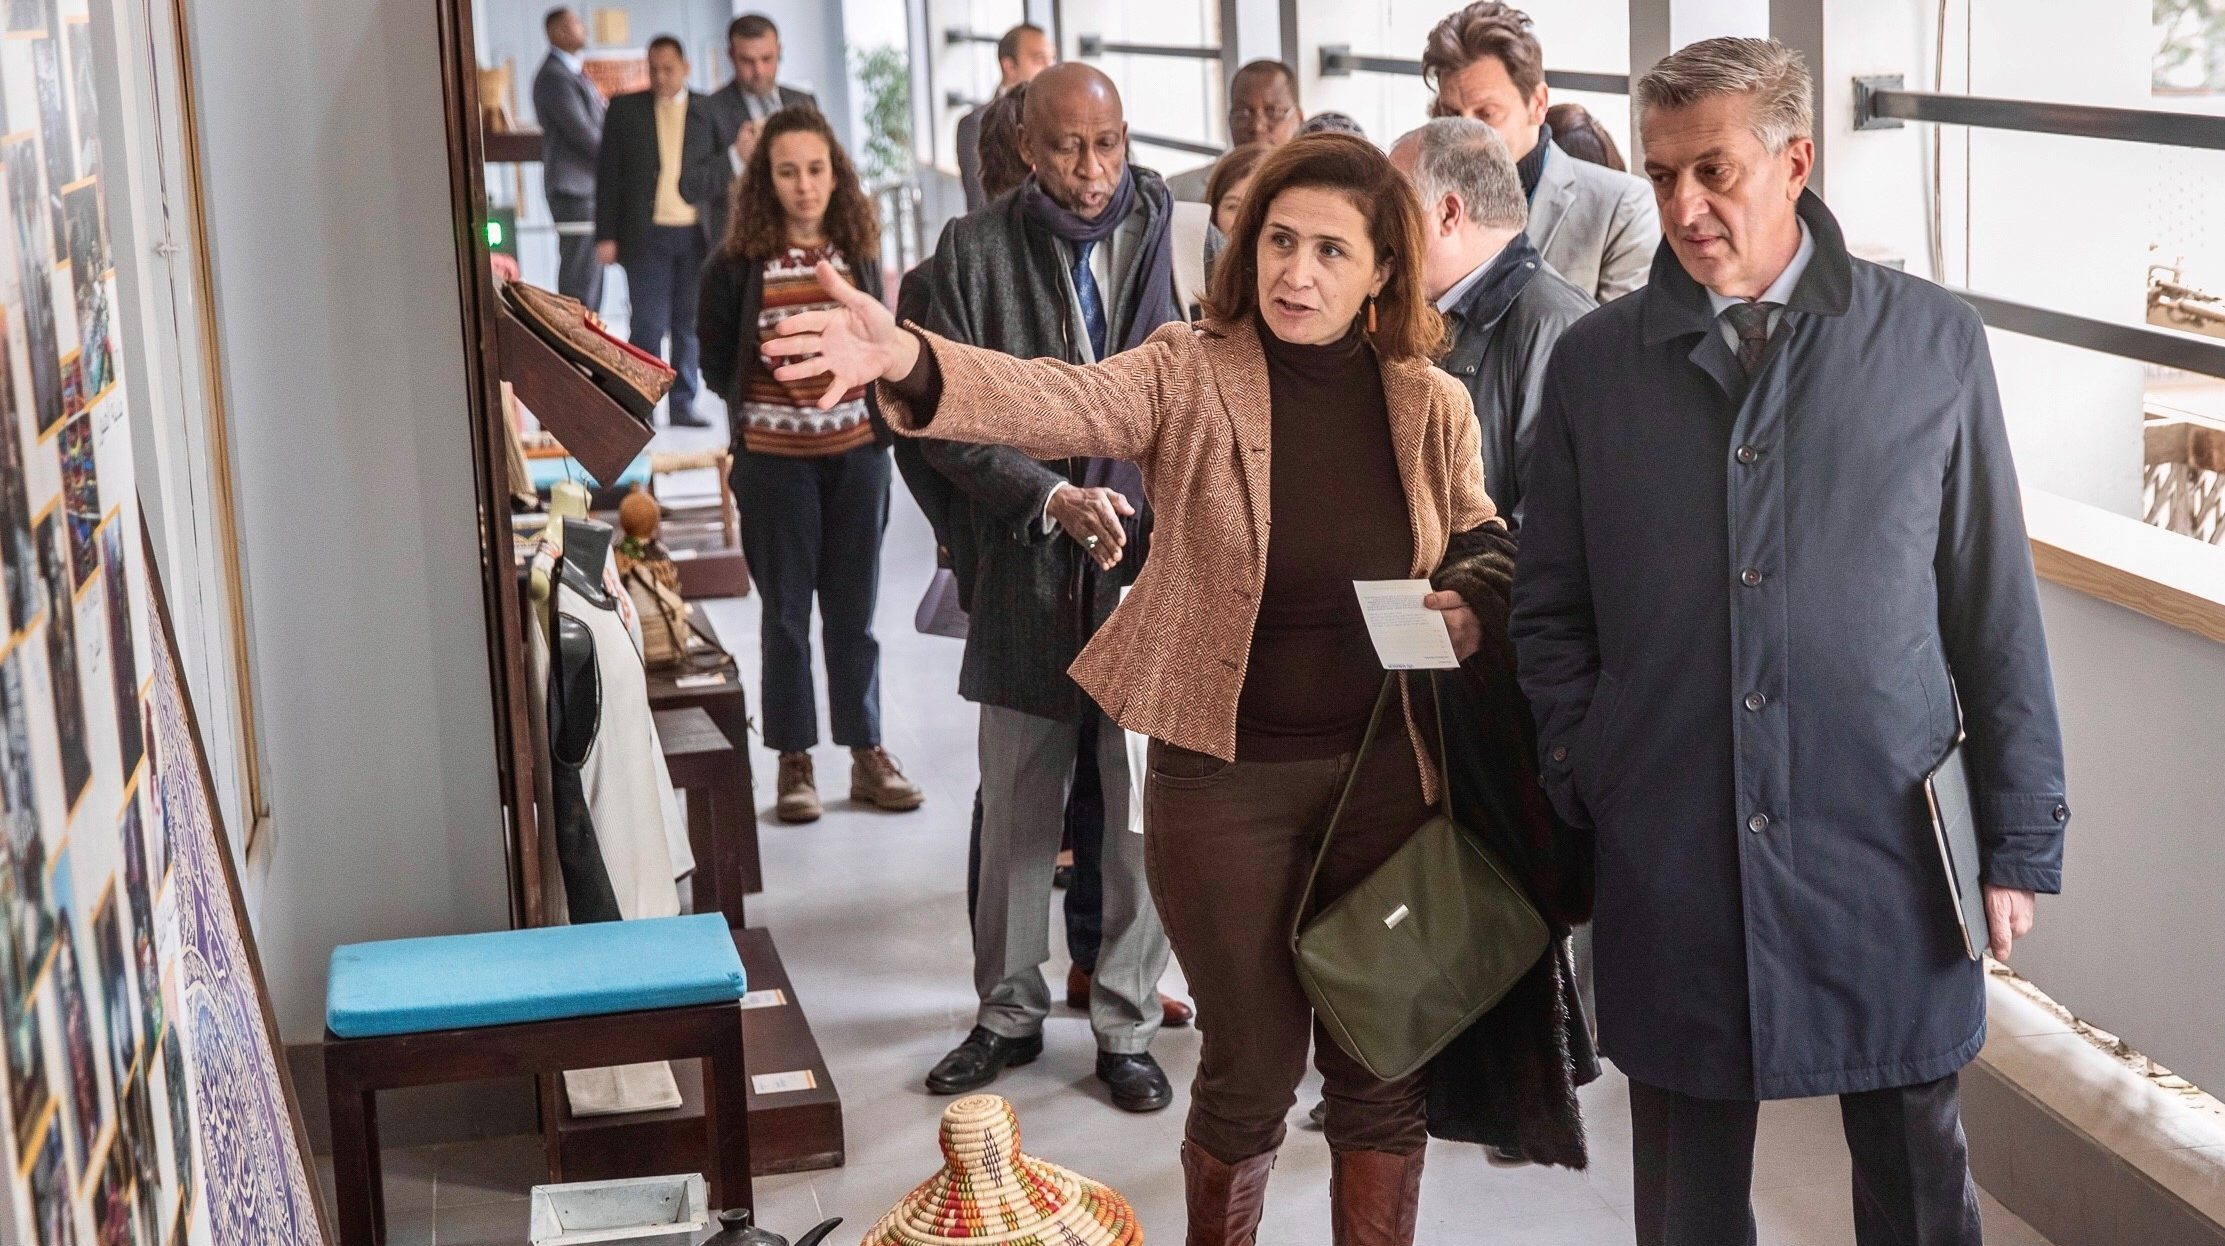 UN refugee chief in Egypt on first official visit in 2019